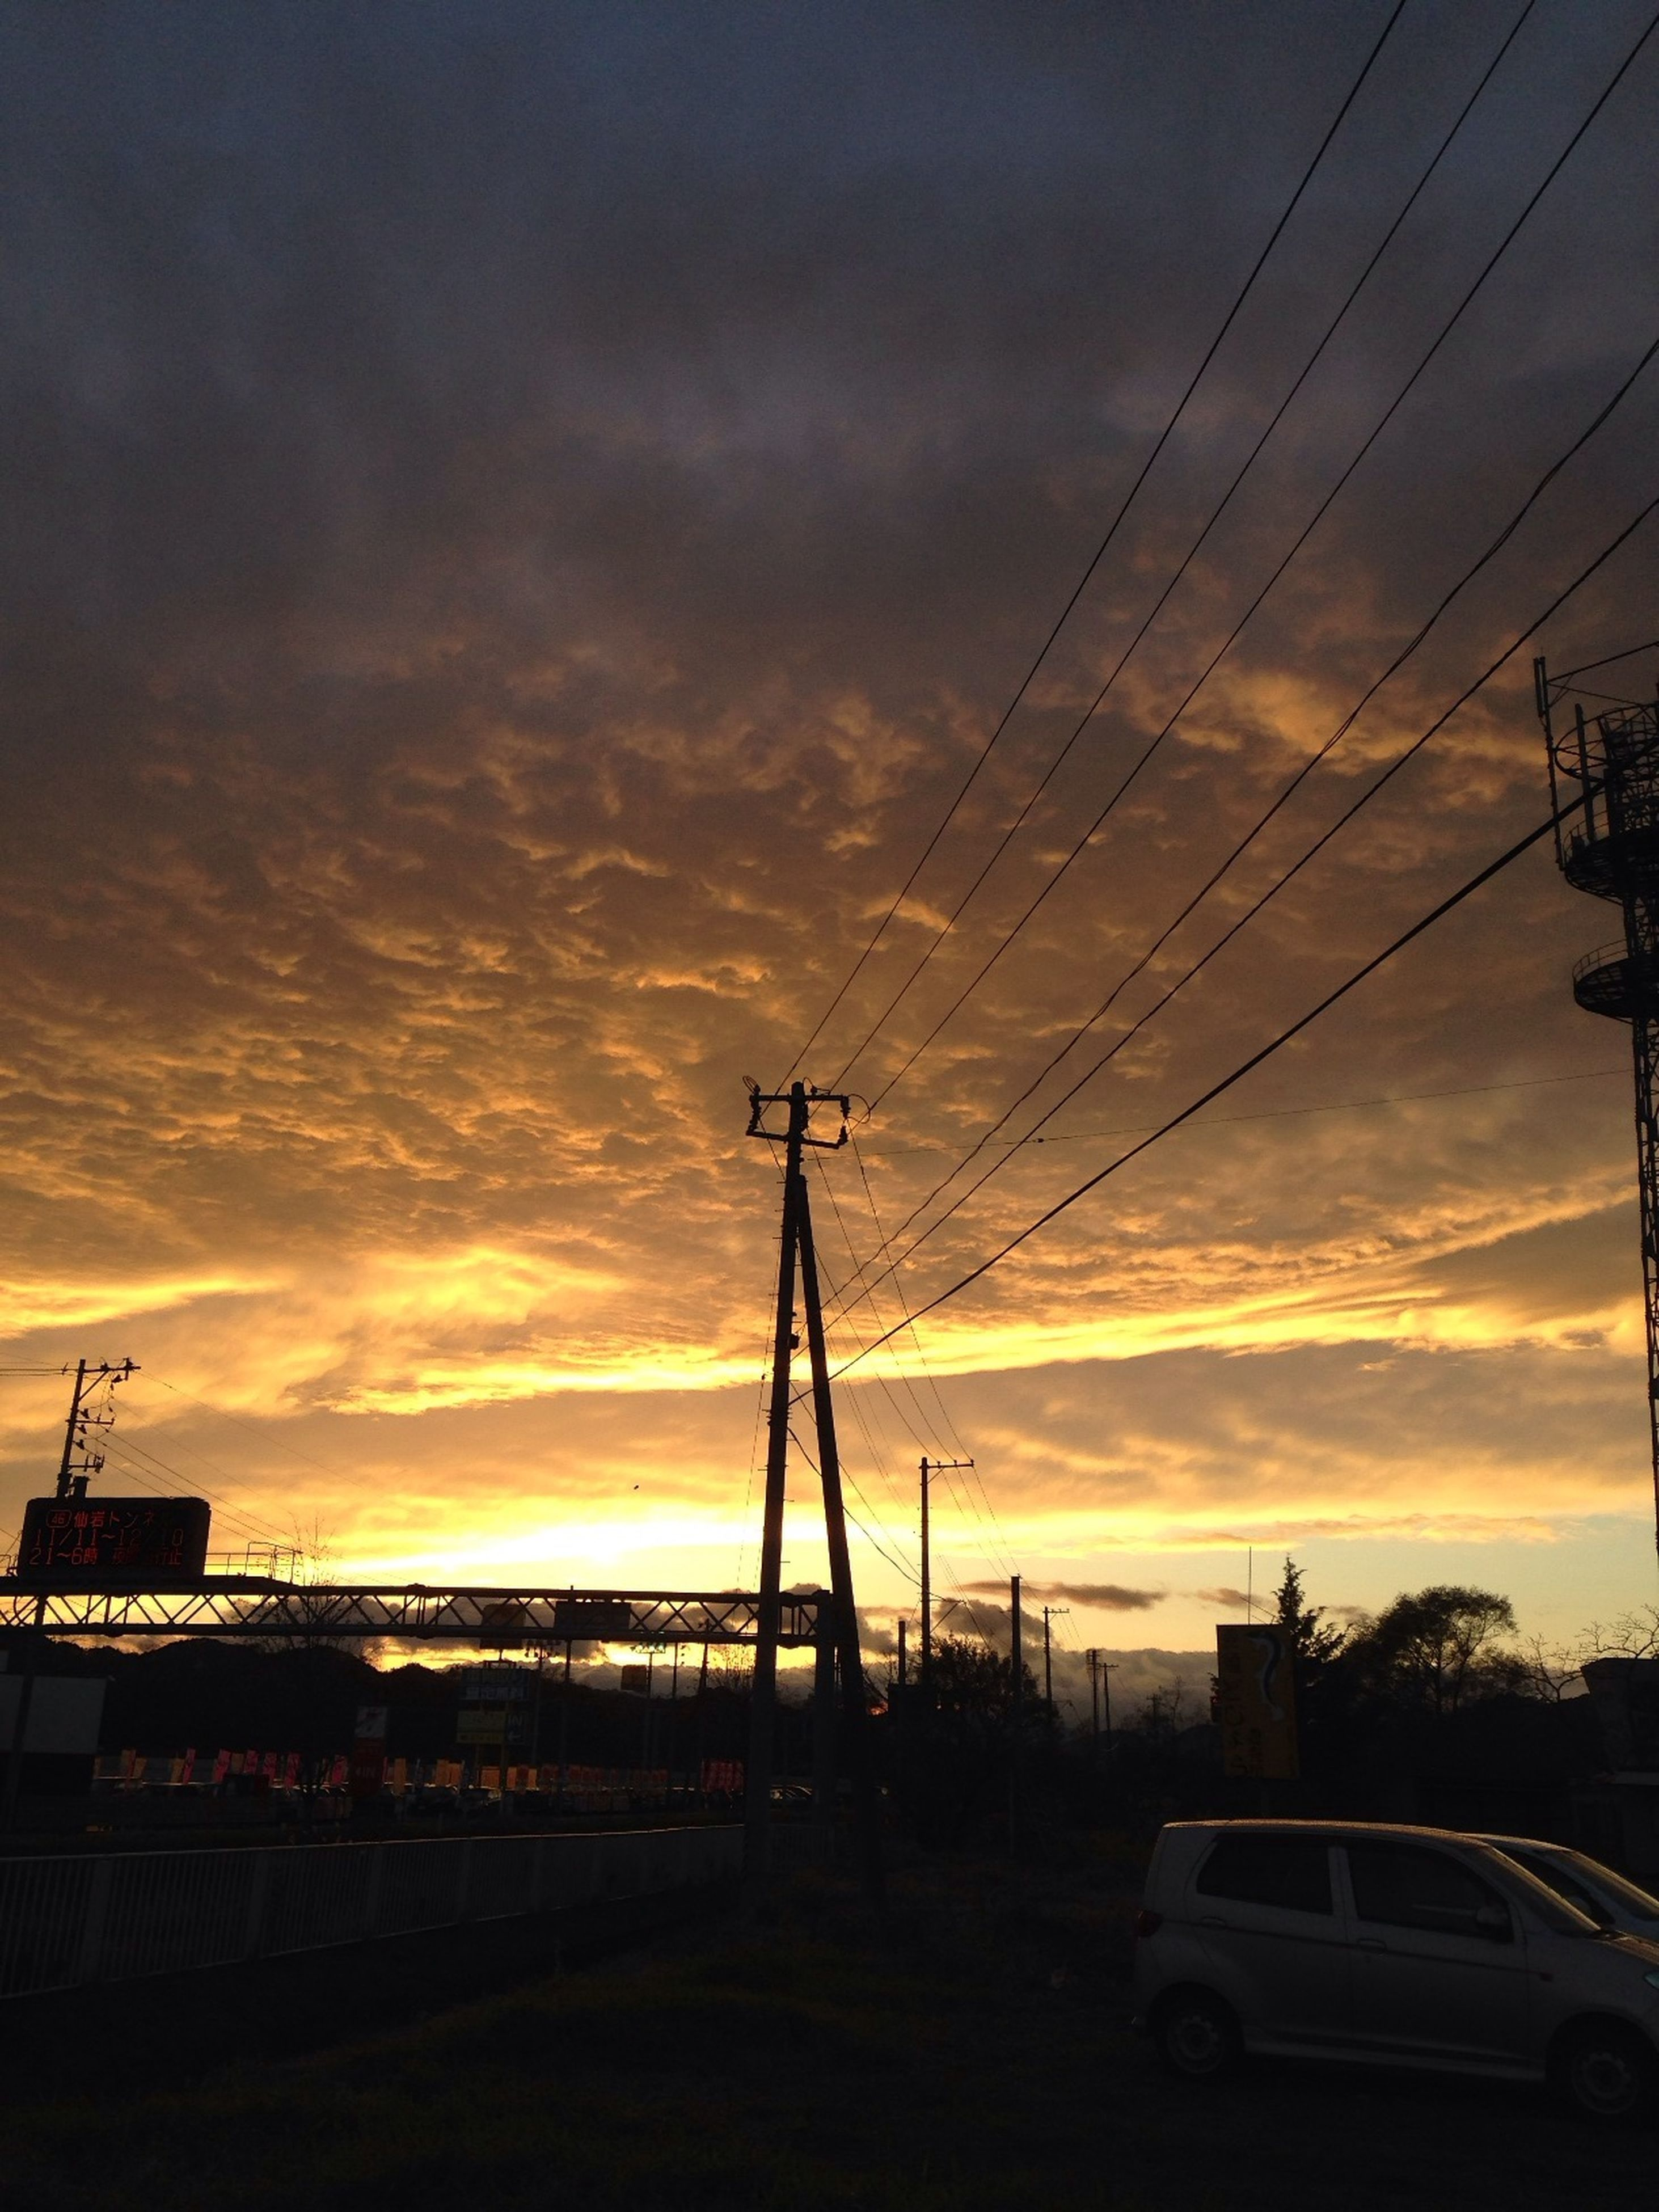 transportation, mode of transport, sky, silhouette, sunset, cloud - sky, power line, electricity pylon, weather, crane - construction machinery, cloudy, dusk, on the move, built structure, travel, outdoors, building exterior, public transportation, nautical vessel, nature